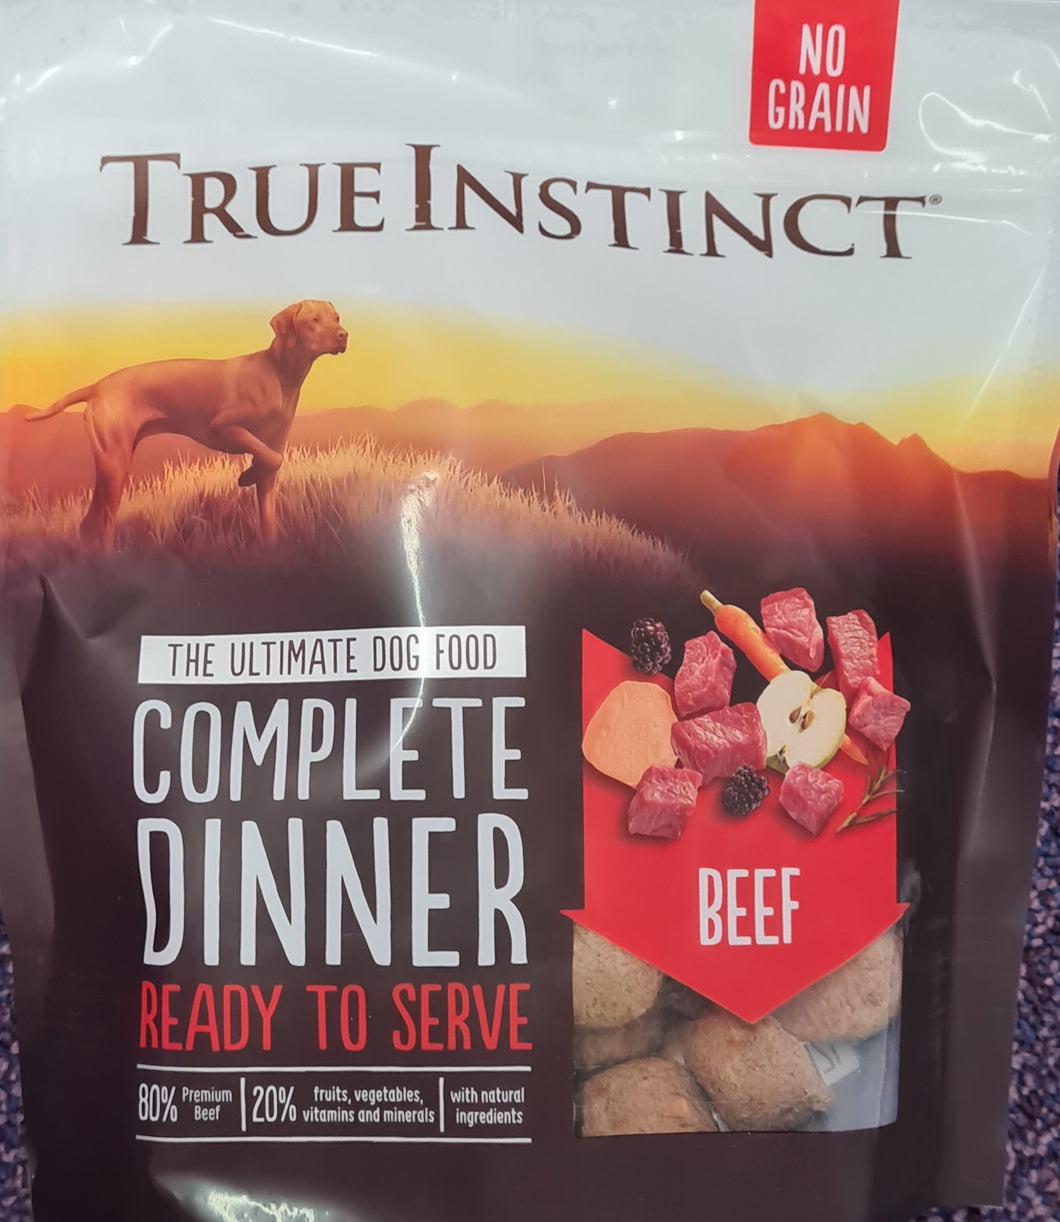 True Instinct Freeze Dried Complete Dinner. Beef 120g - Food for dogs, cats and other pets online | Northampton Raw Dog Food!